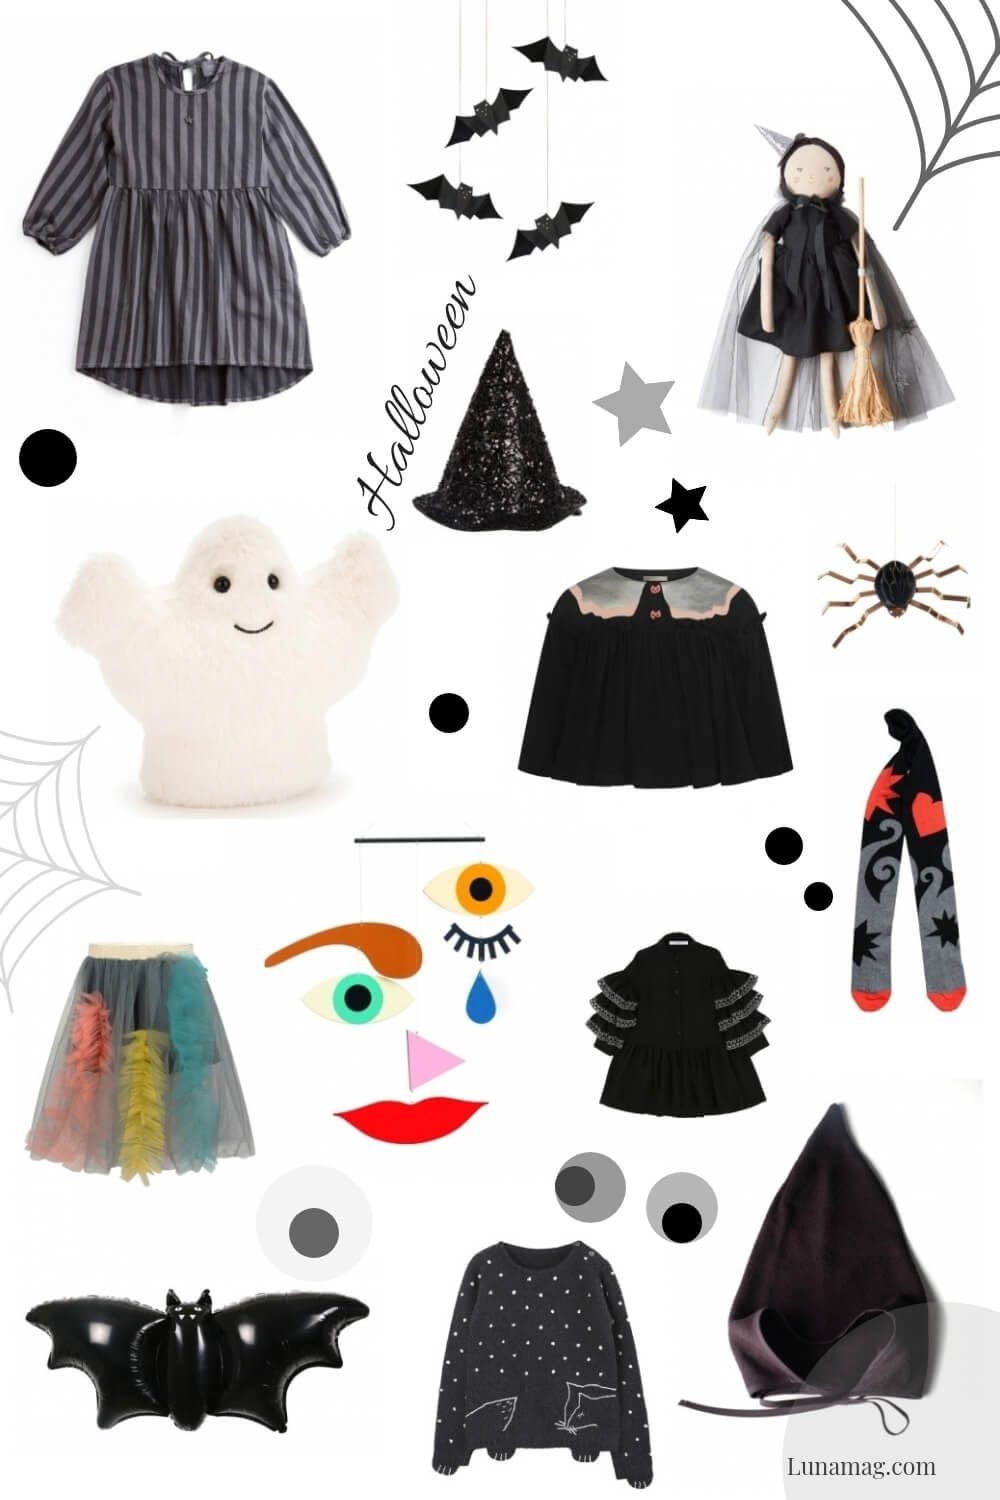 Lunamag.com: Are you ready for Halloween?